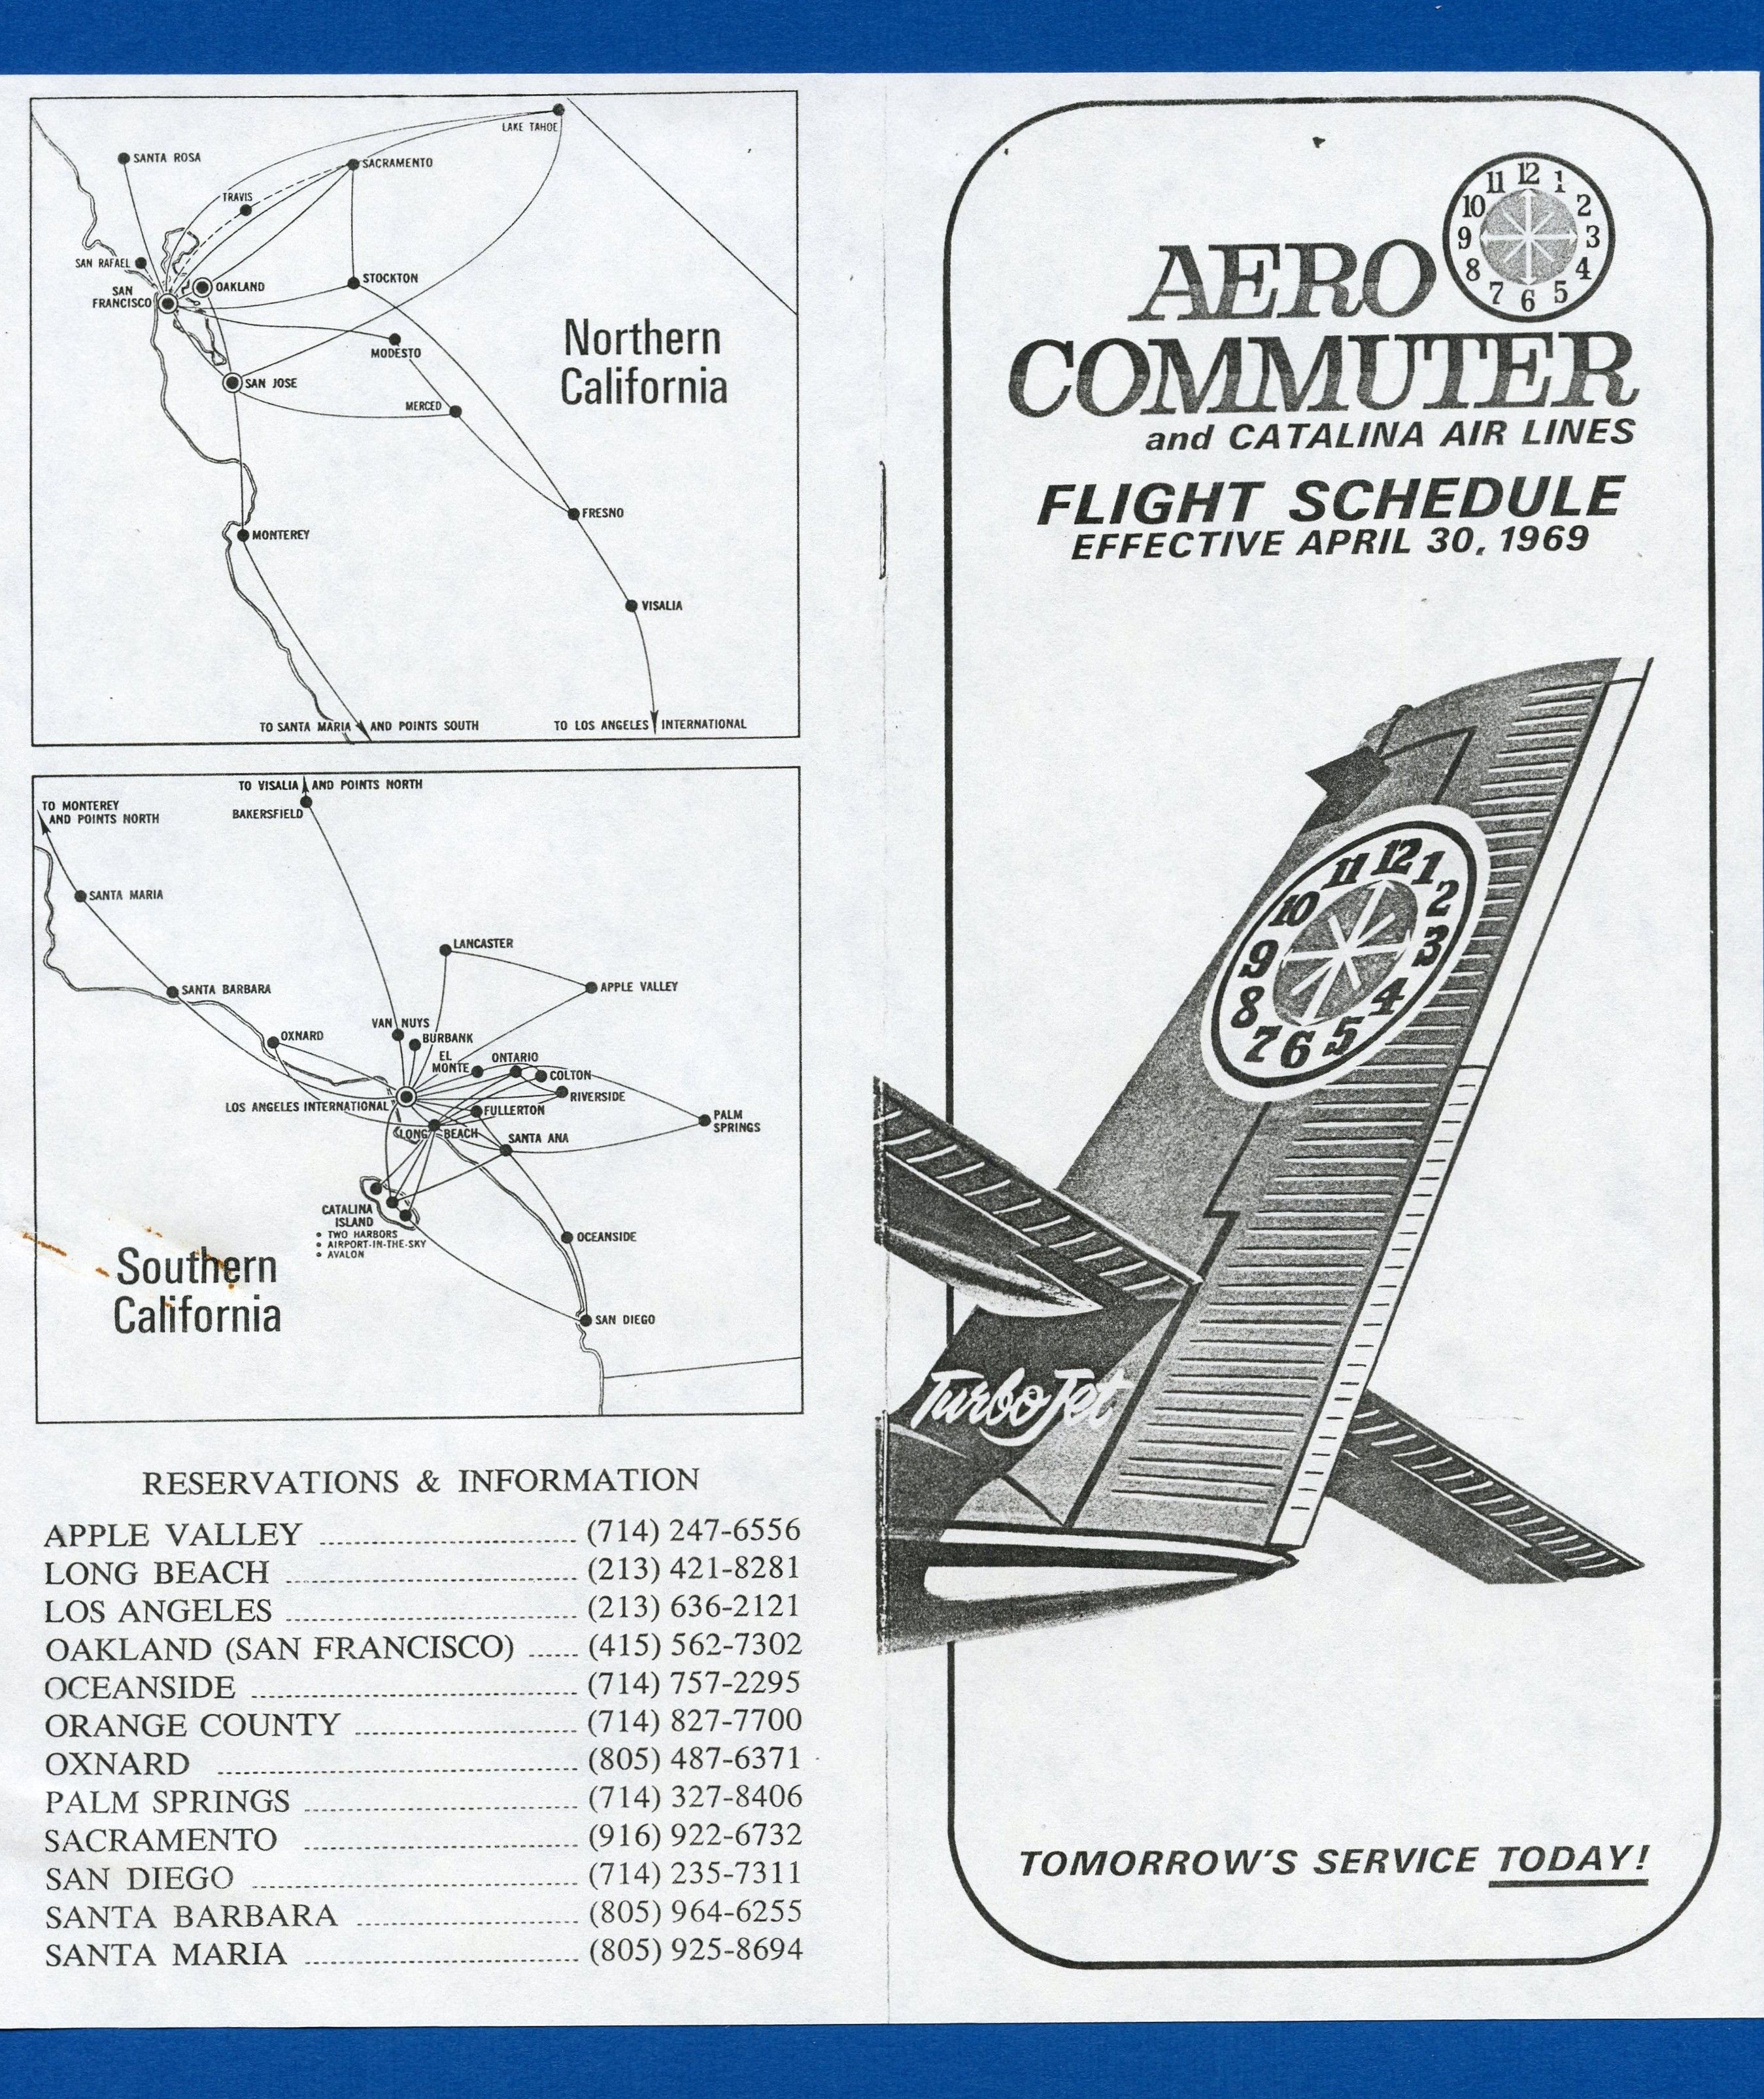 Aero Commuter One of the airlines Golden West Airlines